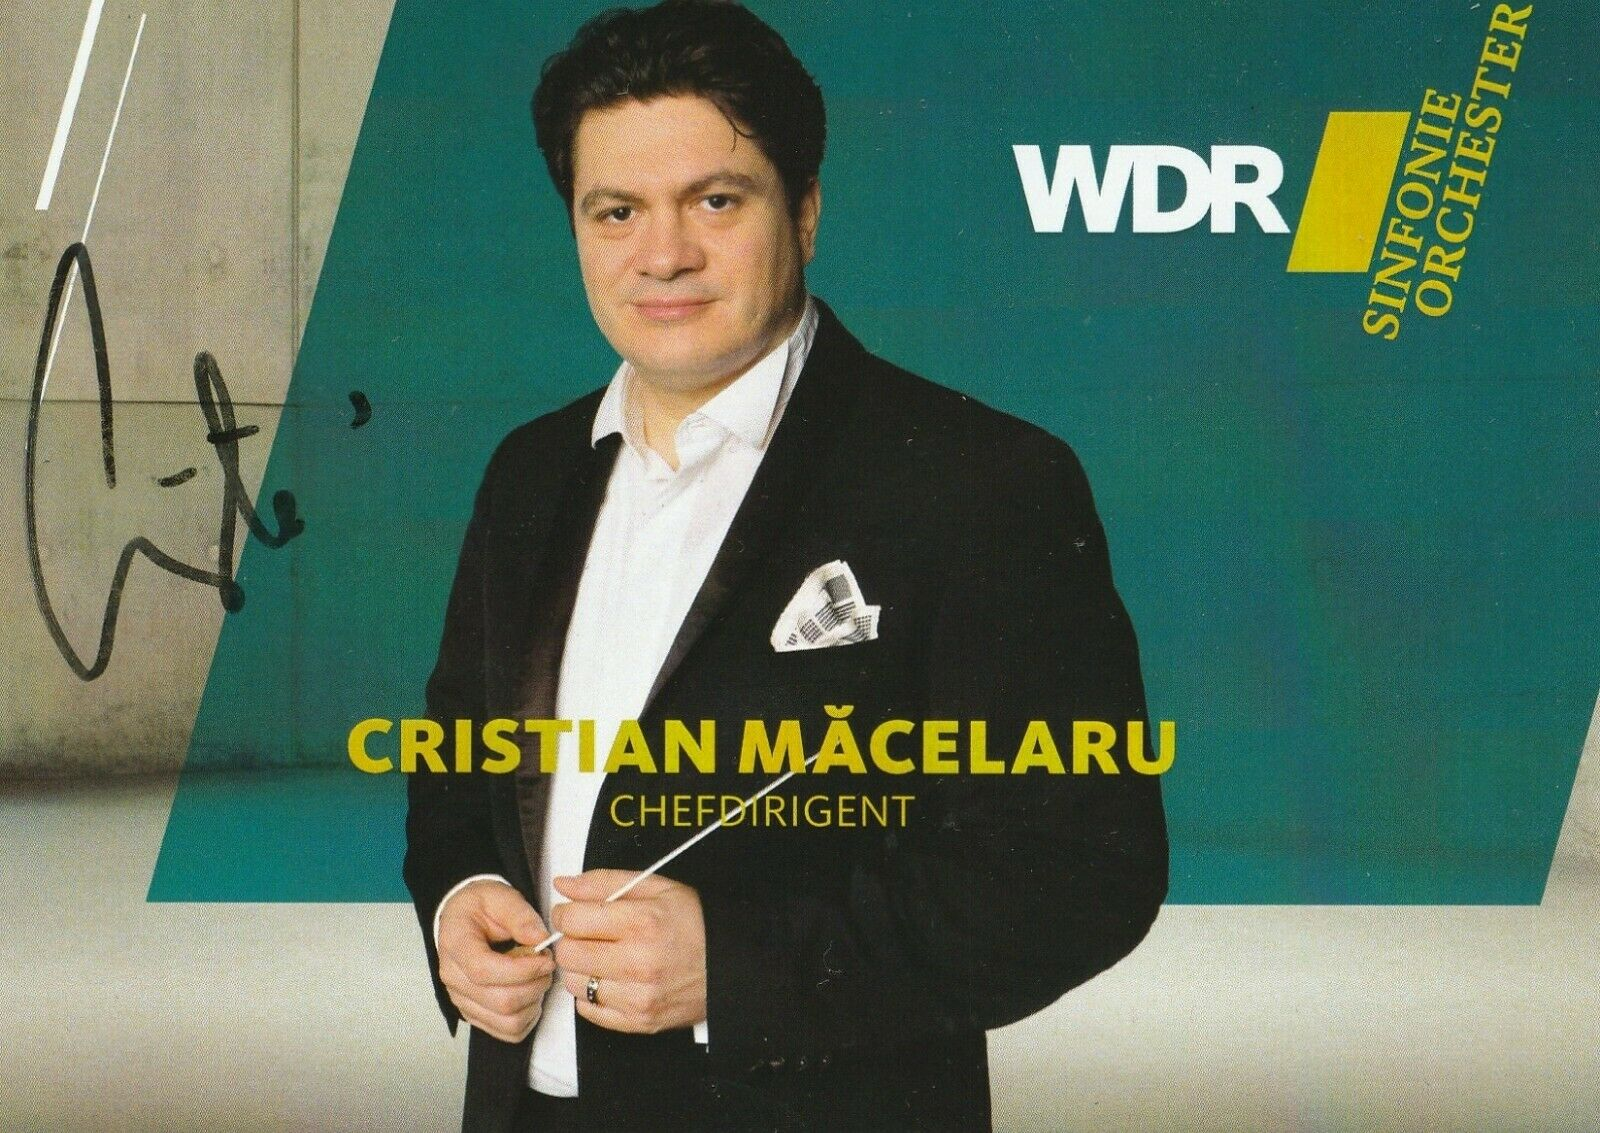 cristian macelaru im radio-today - Shop